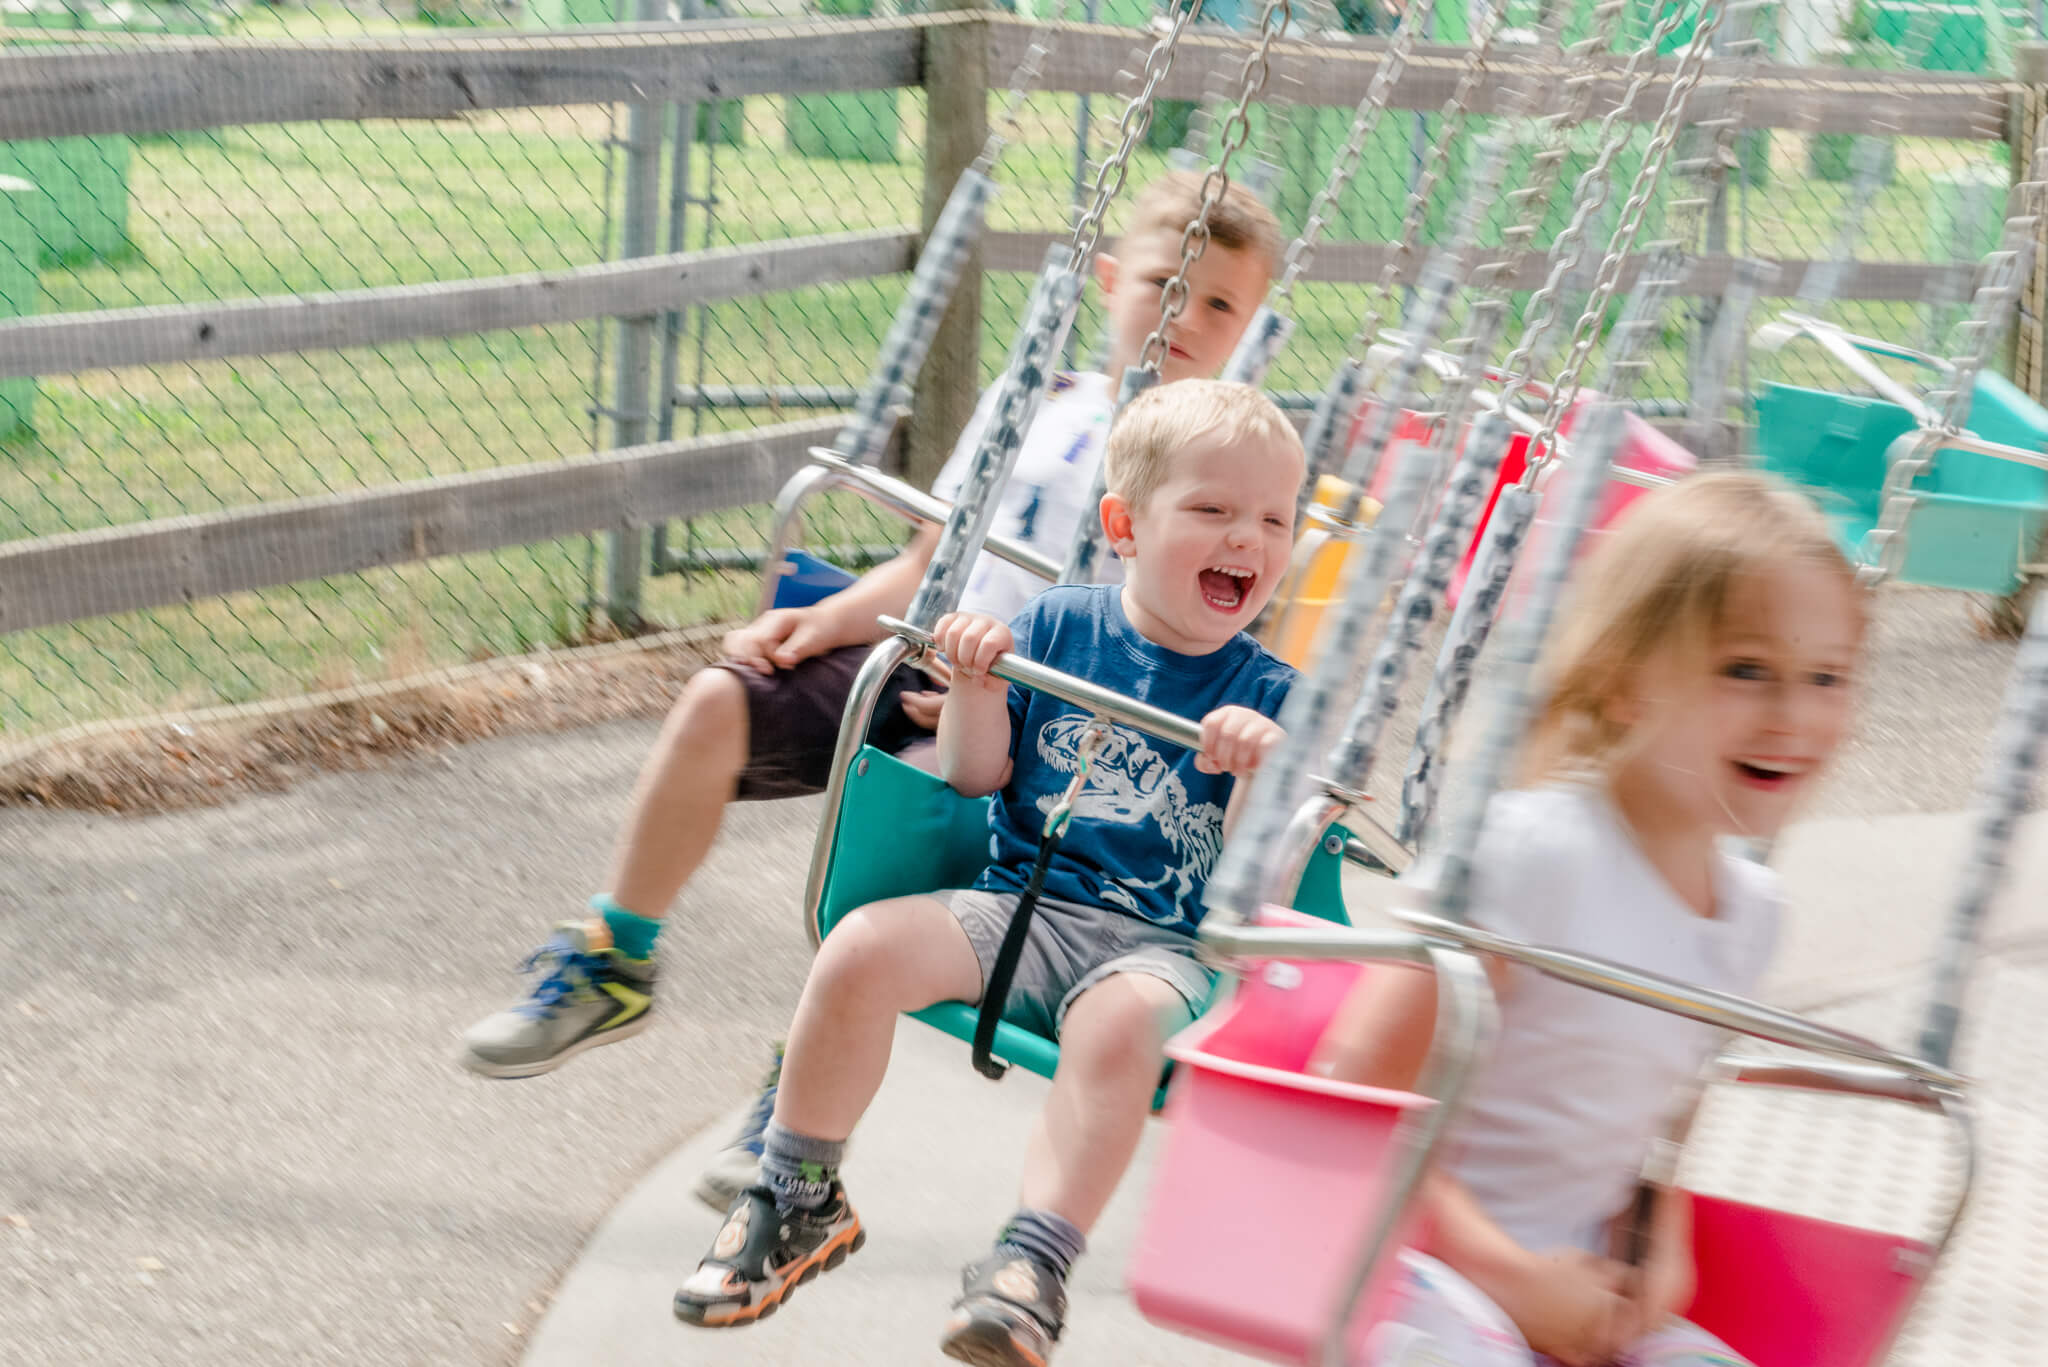 Kids on the swings at Calaway Park